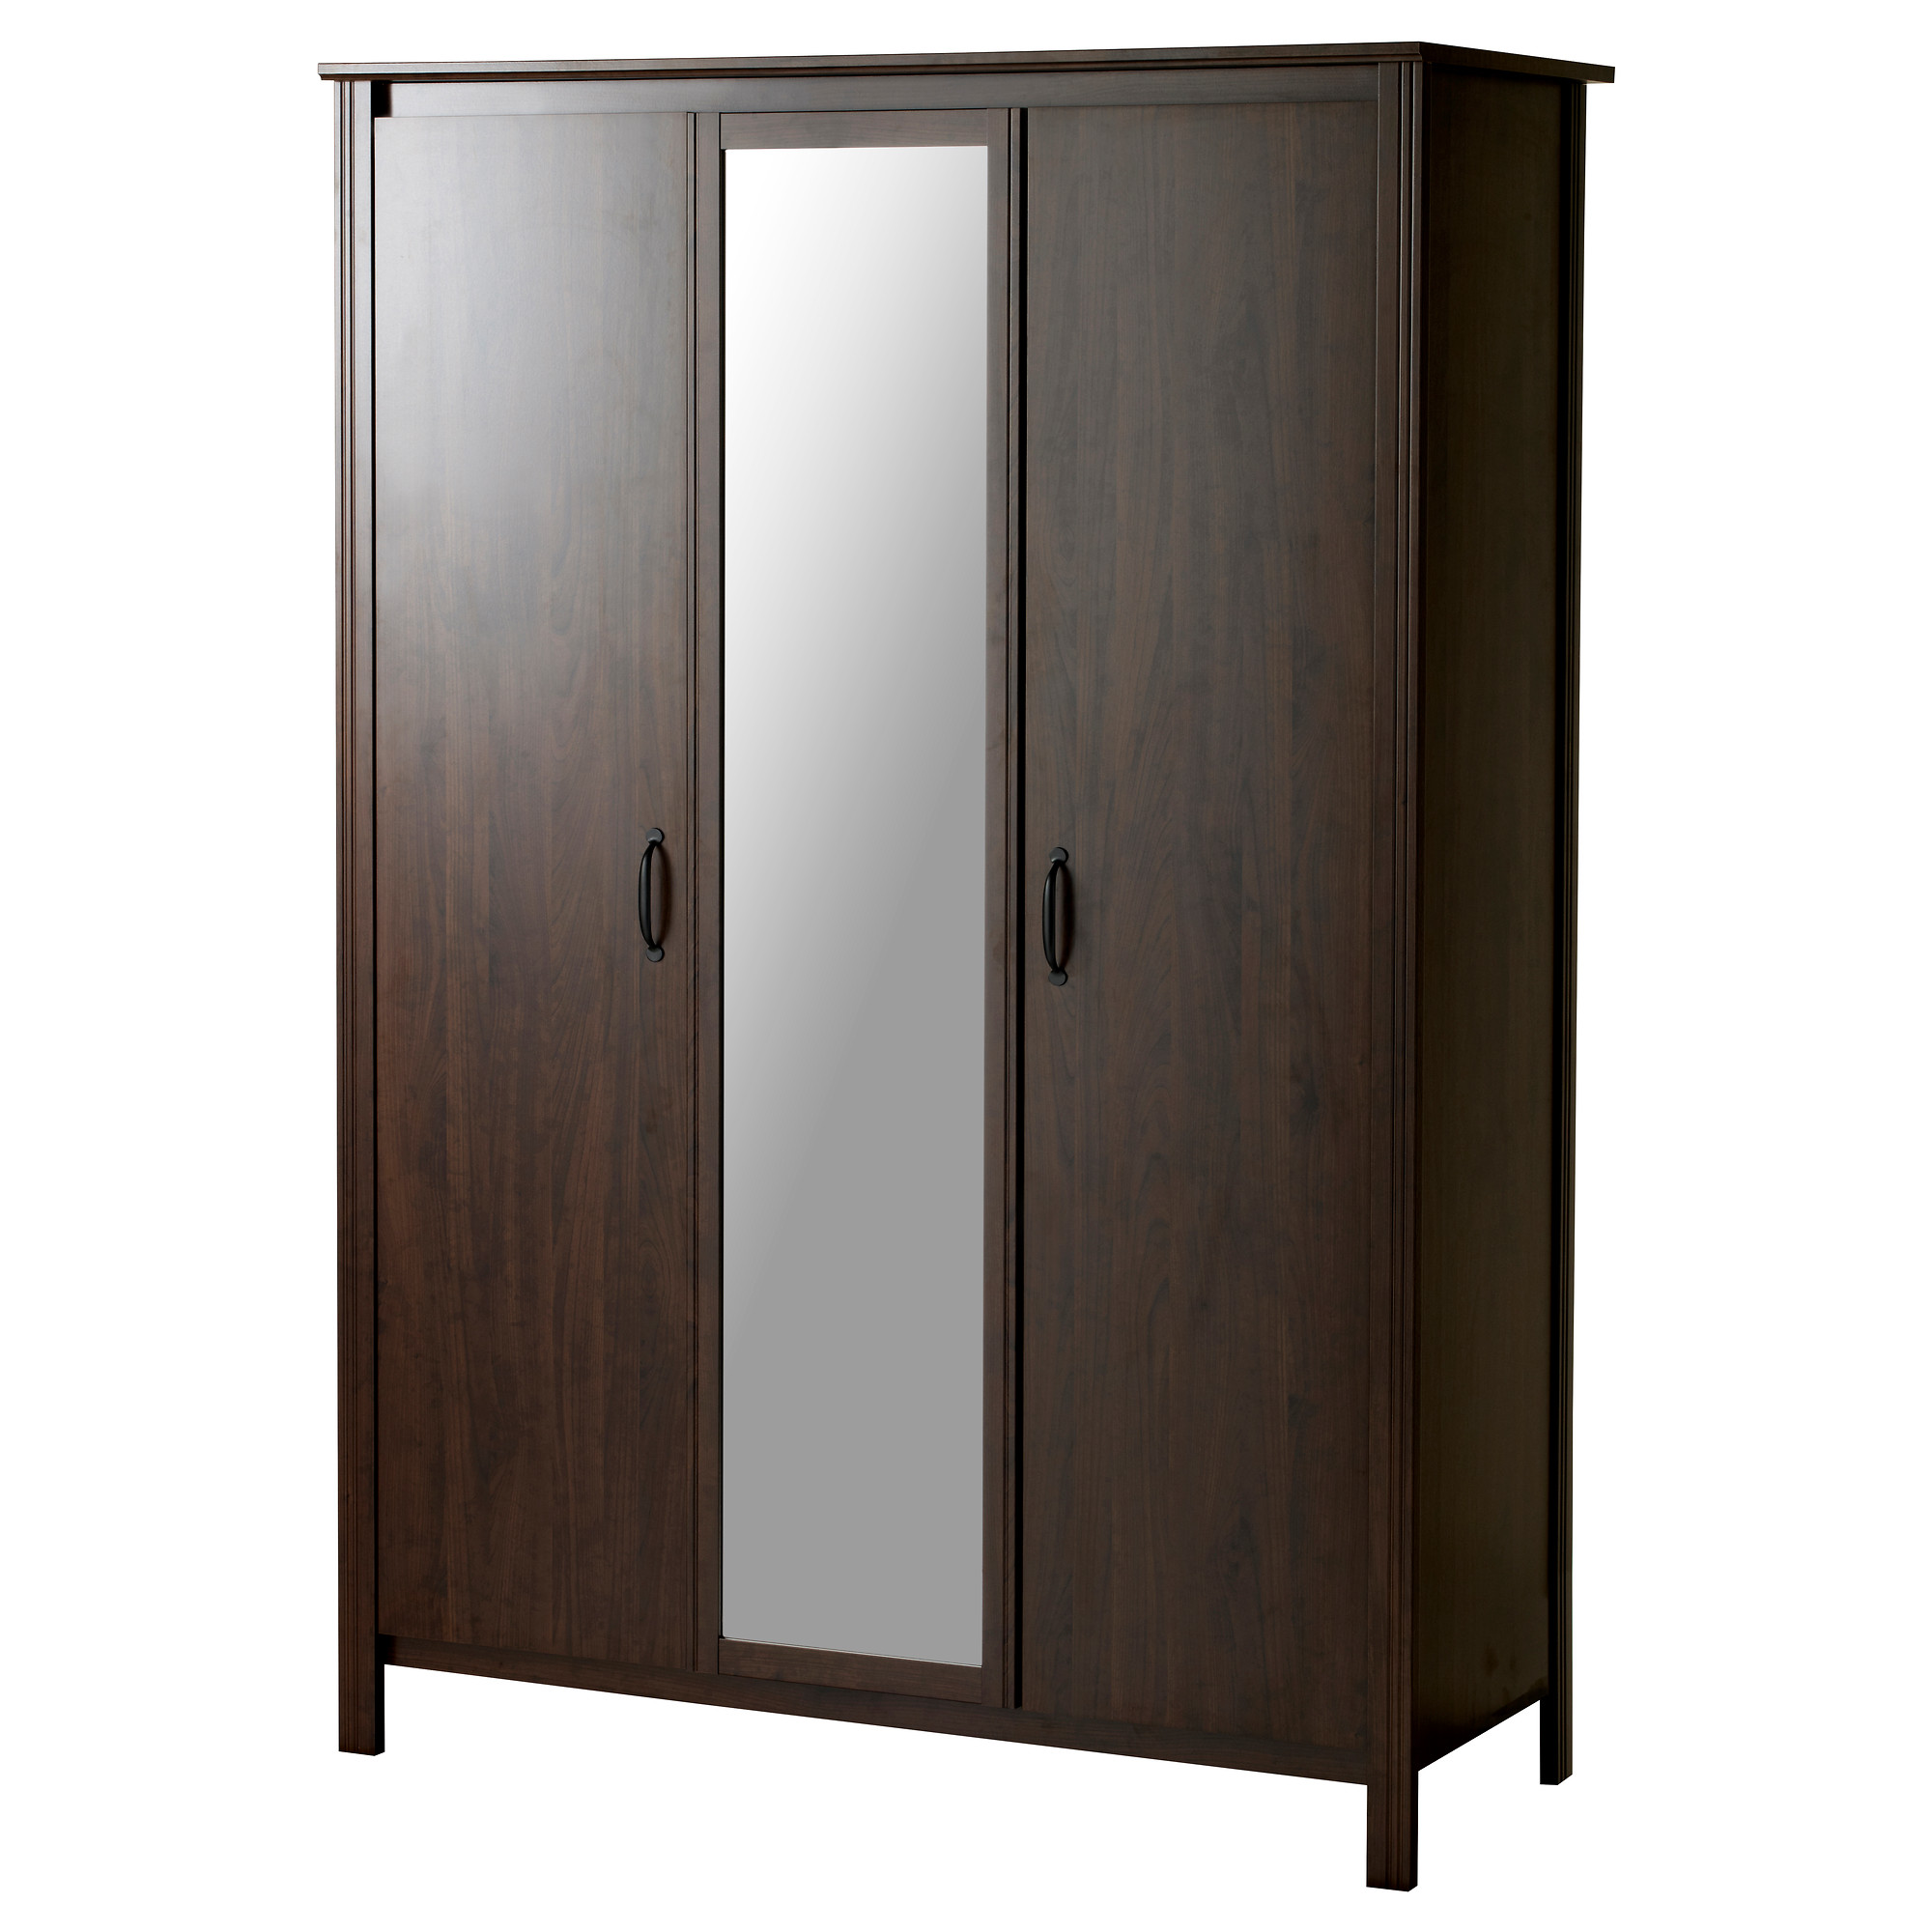 Elegant BRUSALI Wardrobe with 3 doors - IKEA portable wardrobe ikea